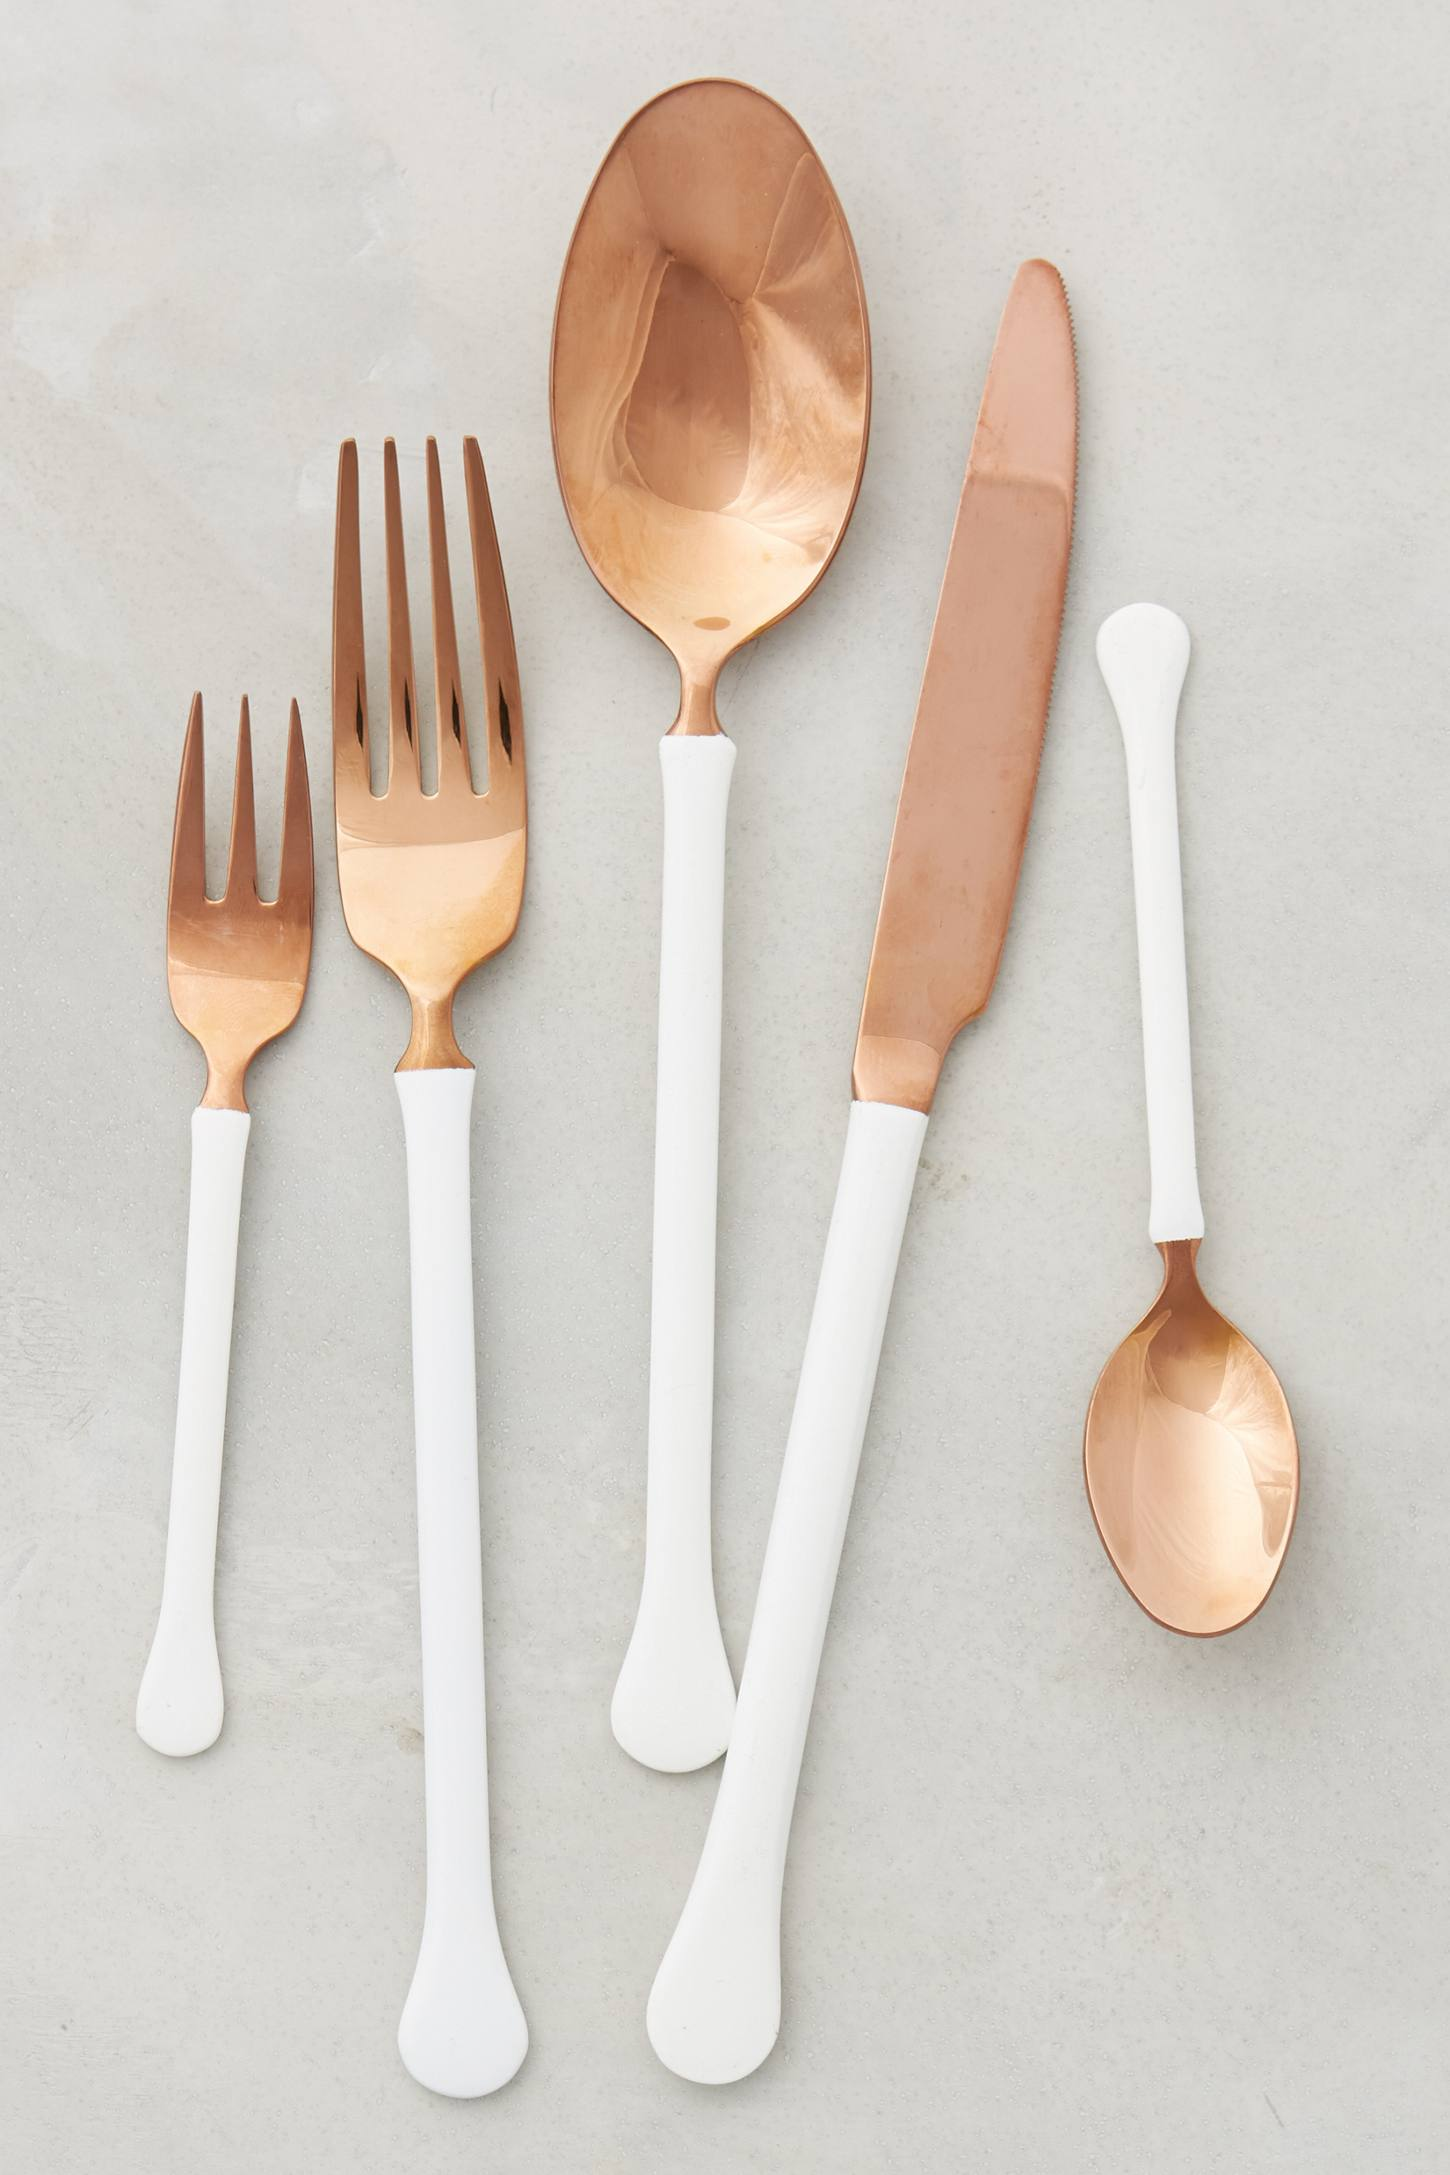 Copper flatware from Anthropologie